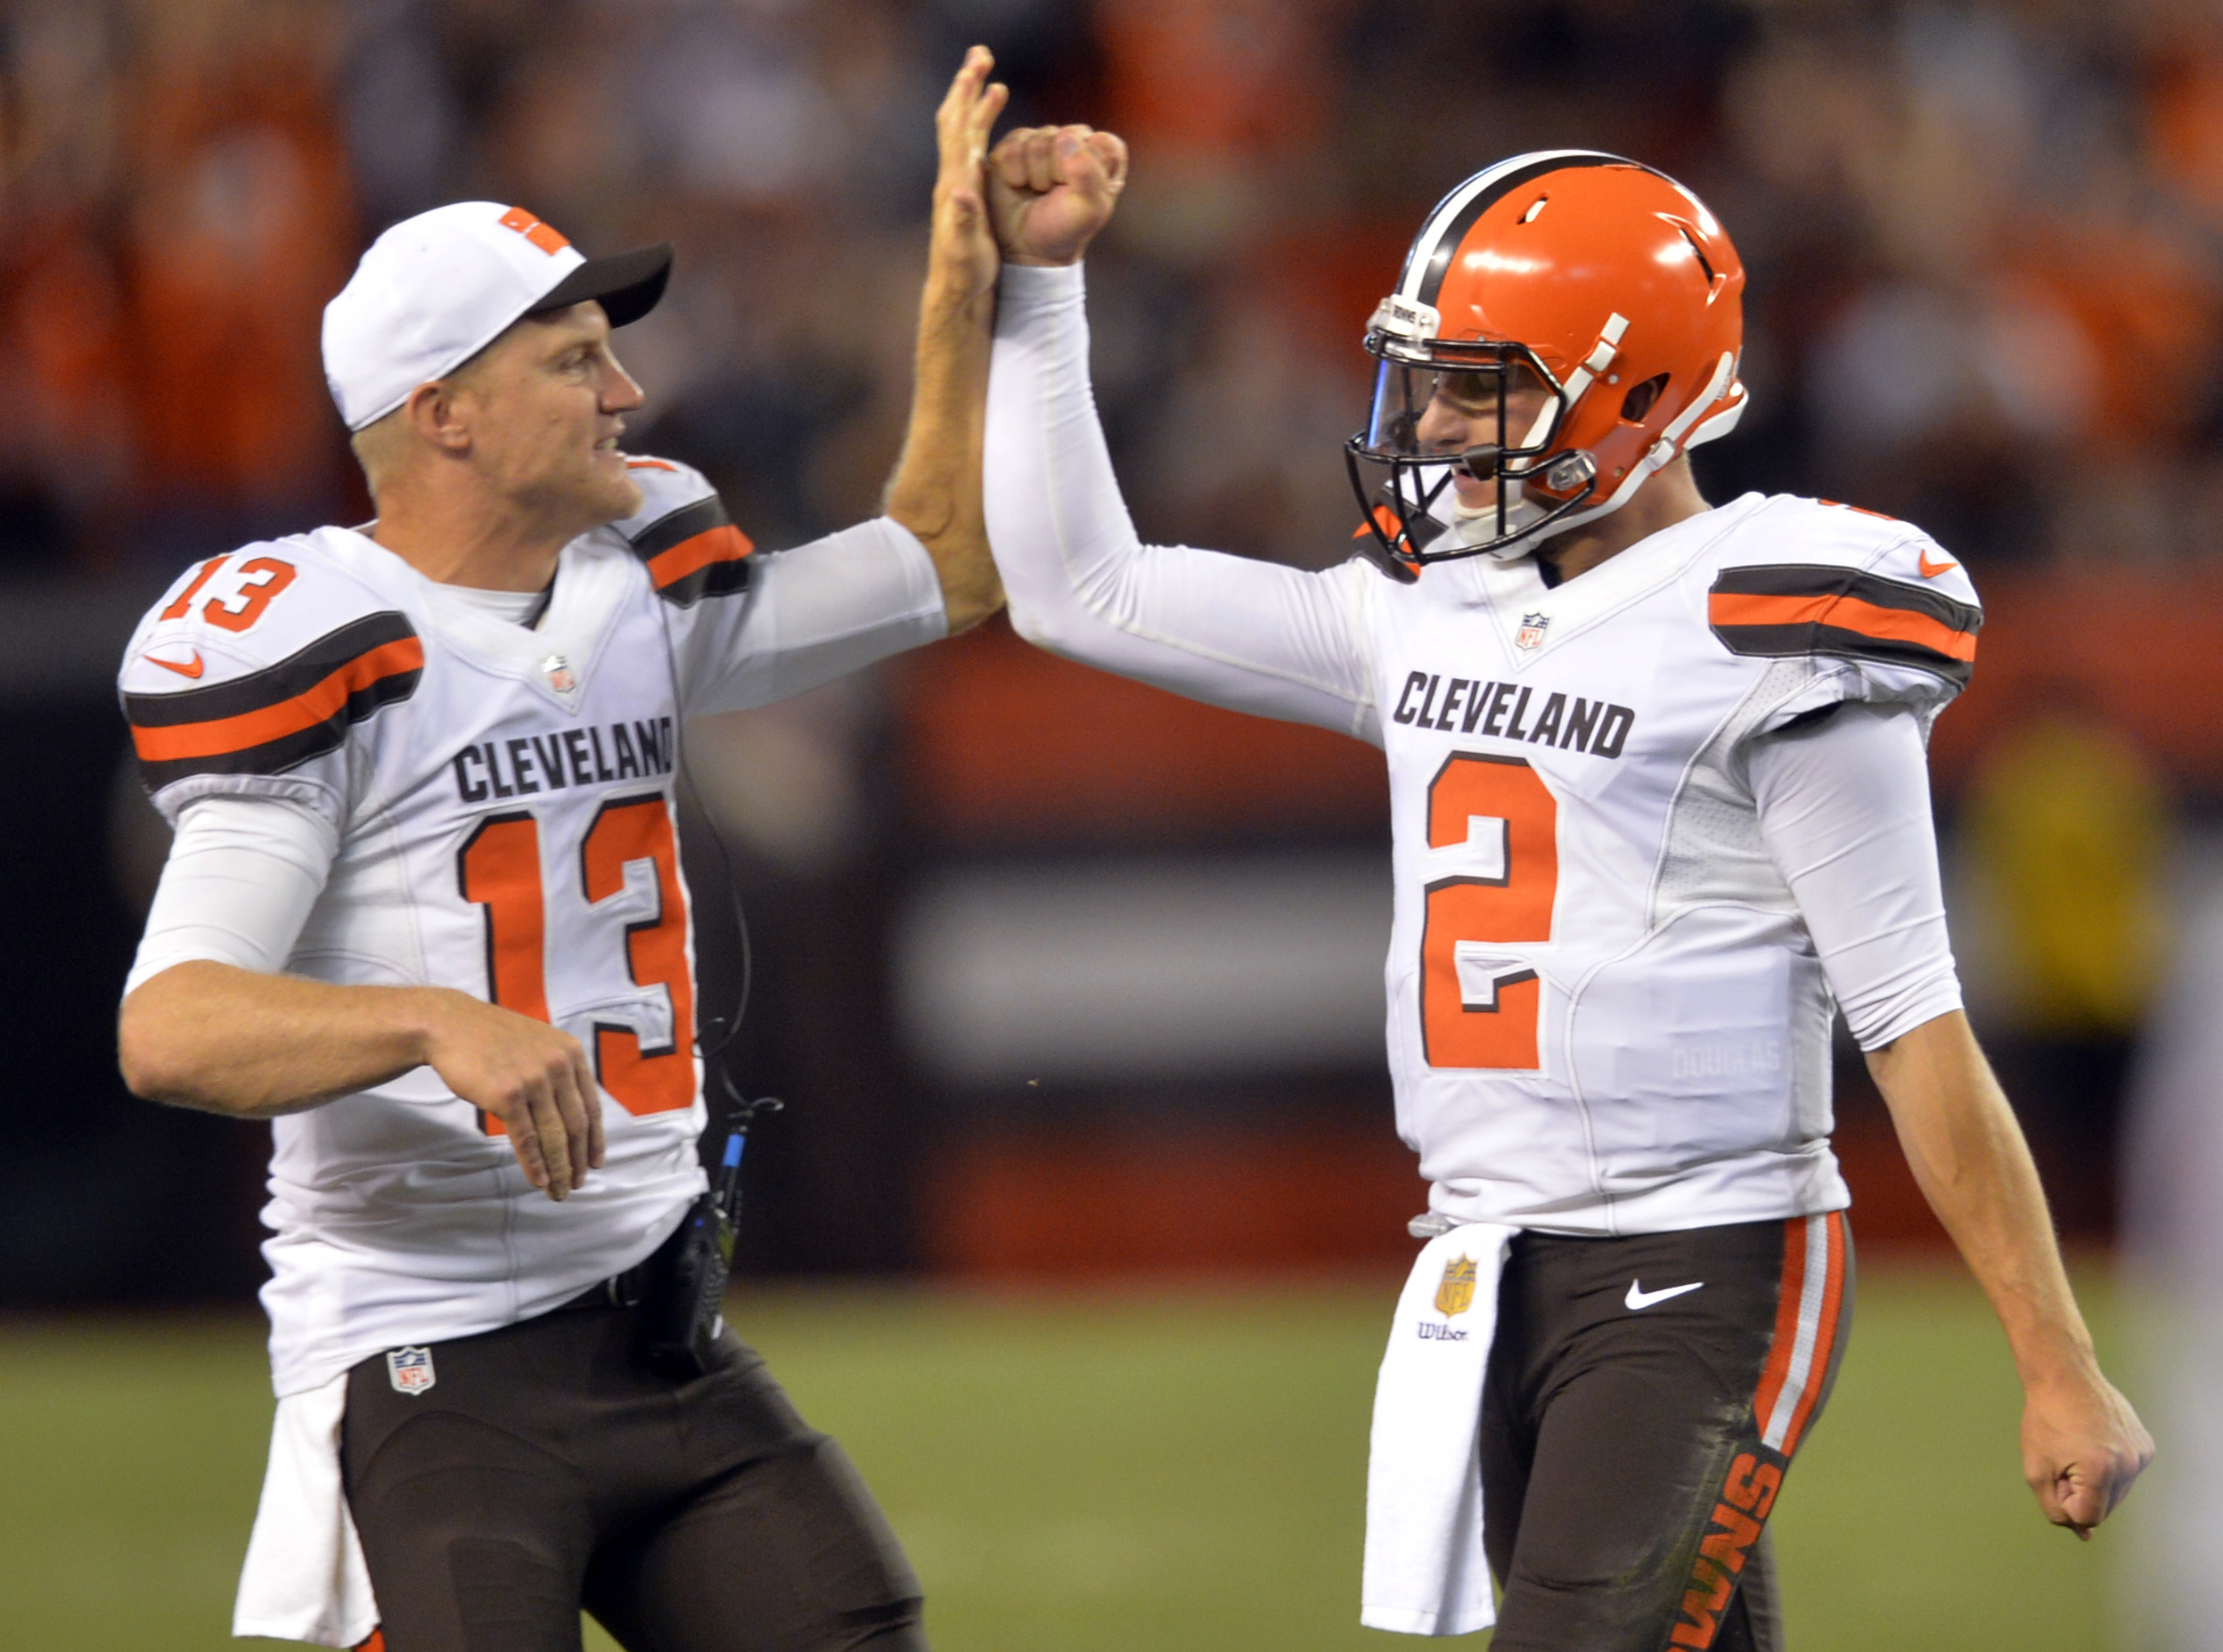 Cleveland Browns quarterback Josh McCown (13) congratulates Johnny Manziel (2) after Manziel threw a 21-yard touchdown pass to Shane Wynn during the fourth quarter of an NFL preseason football game against the Buffalo Bills, Thursday, Aug. 20, 2015, in Cl